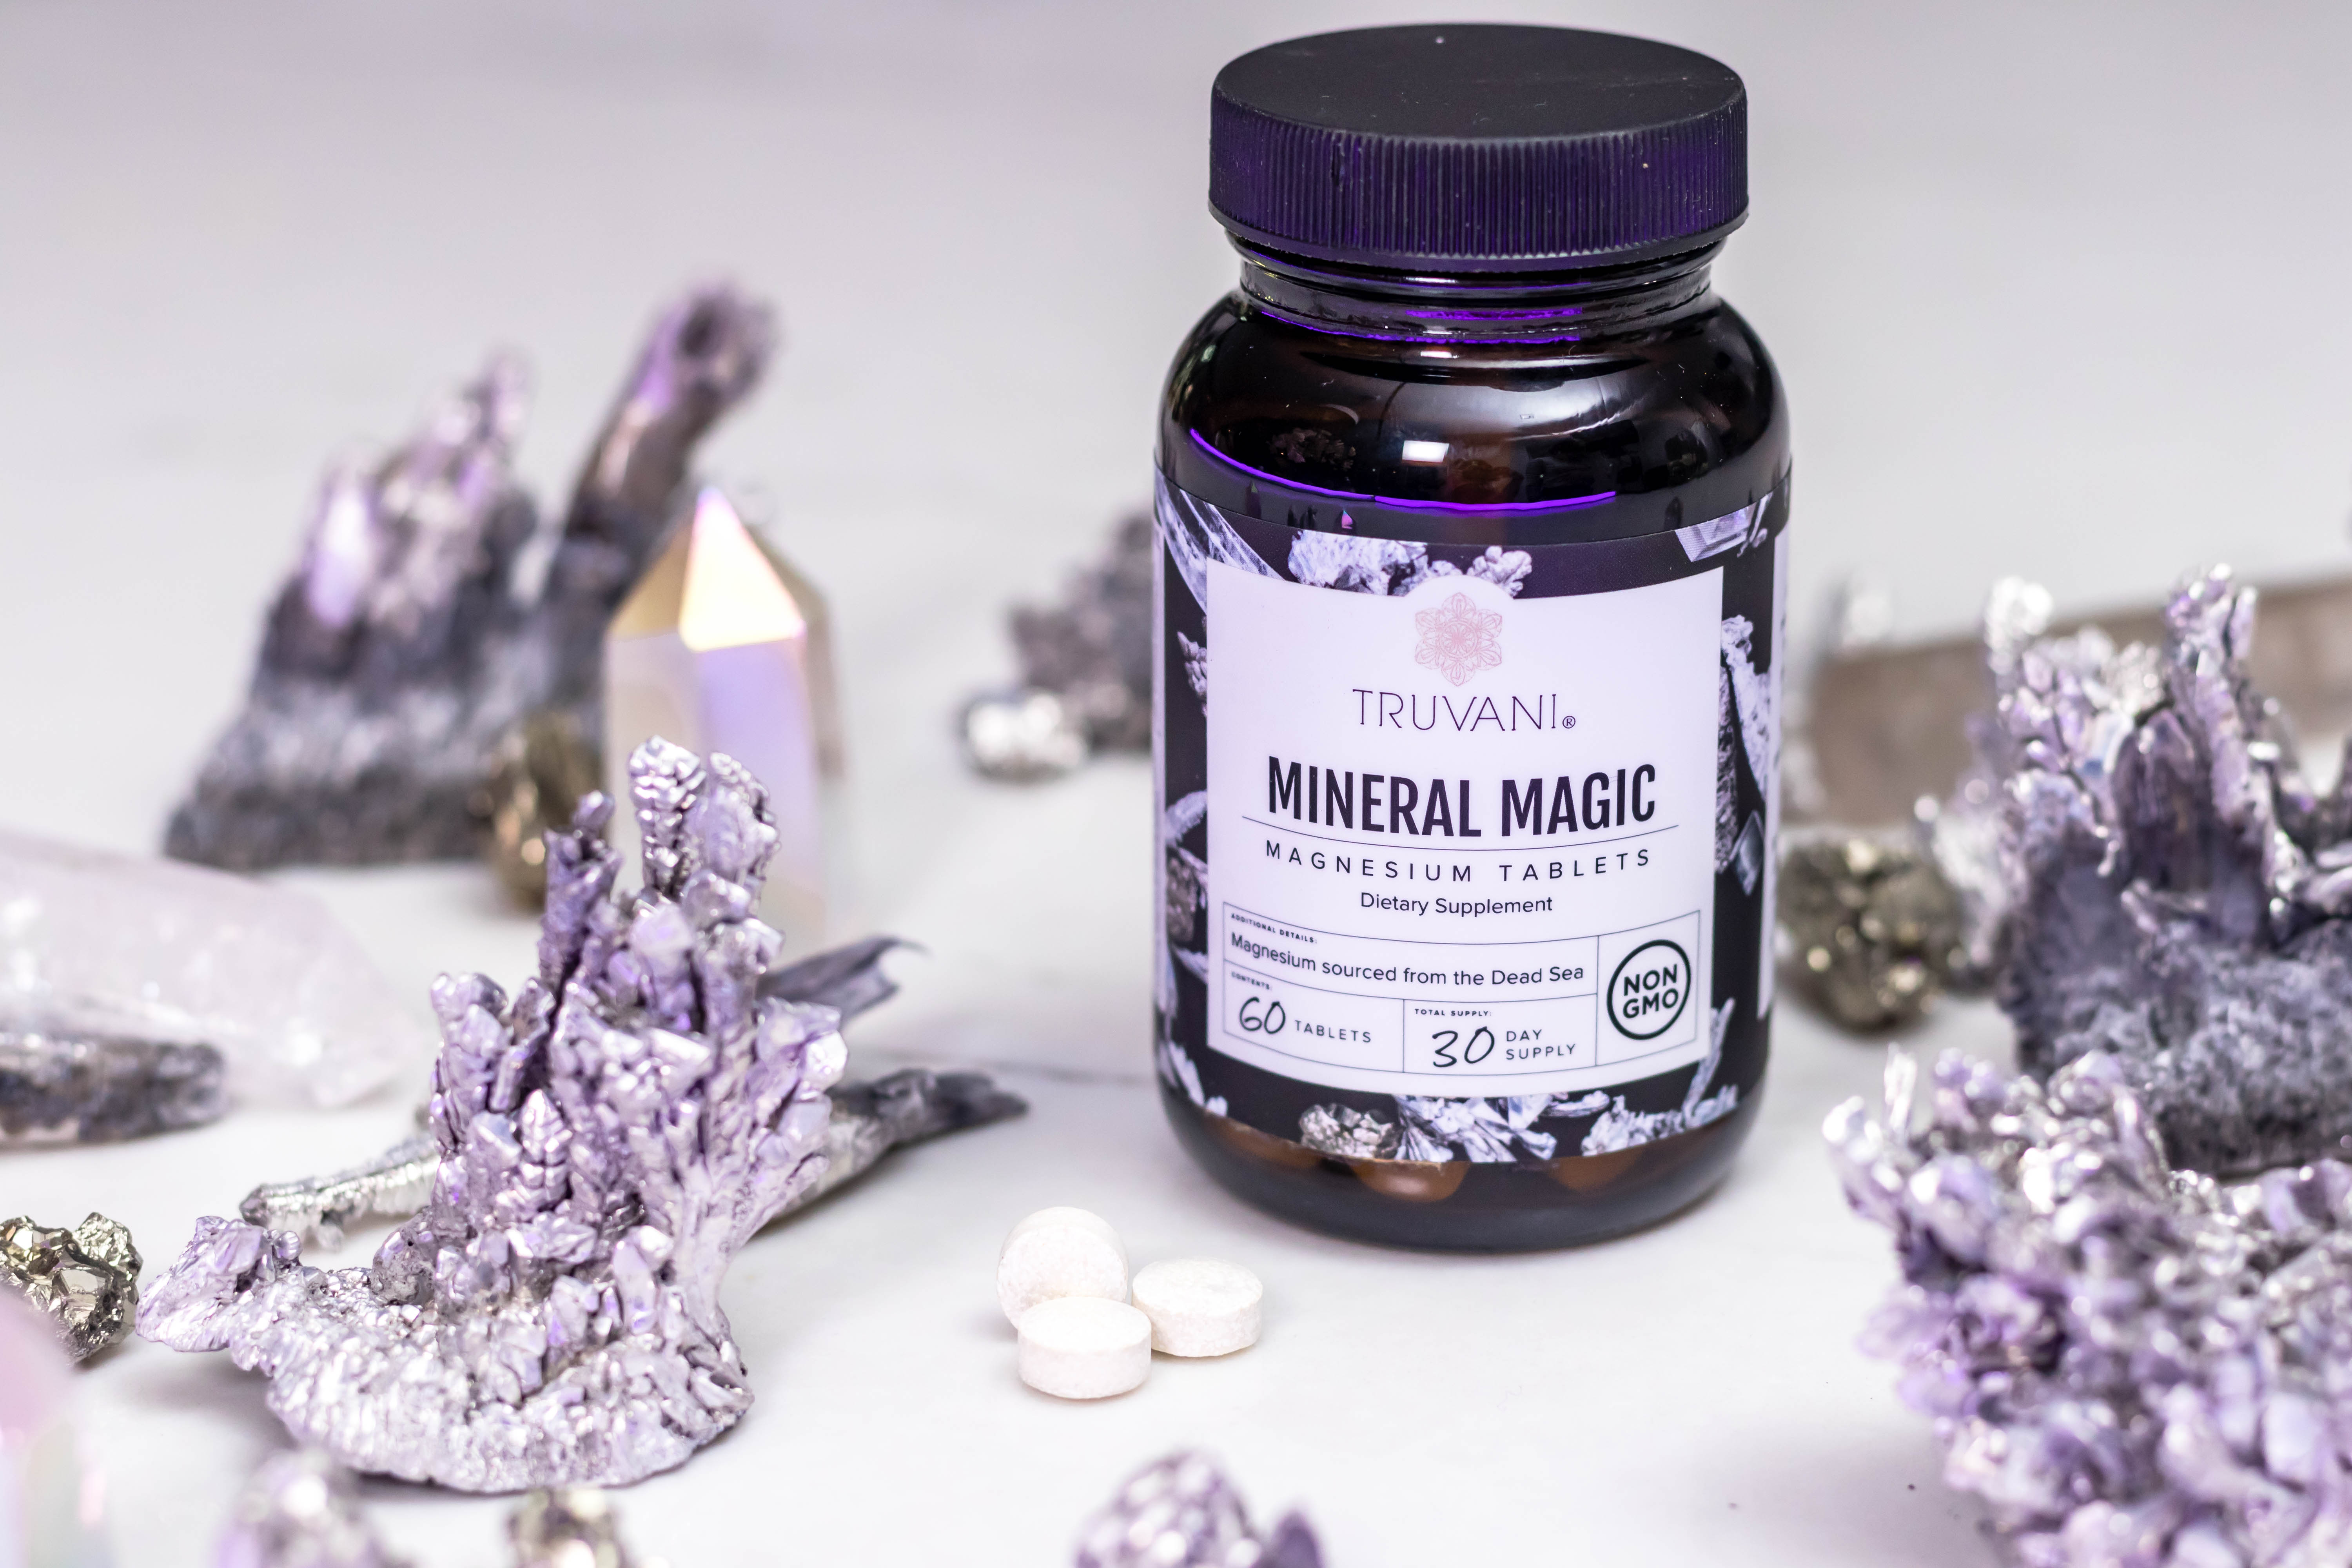 Truvani mineral magic magnesium supplement